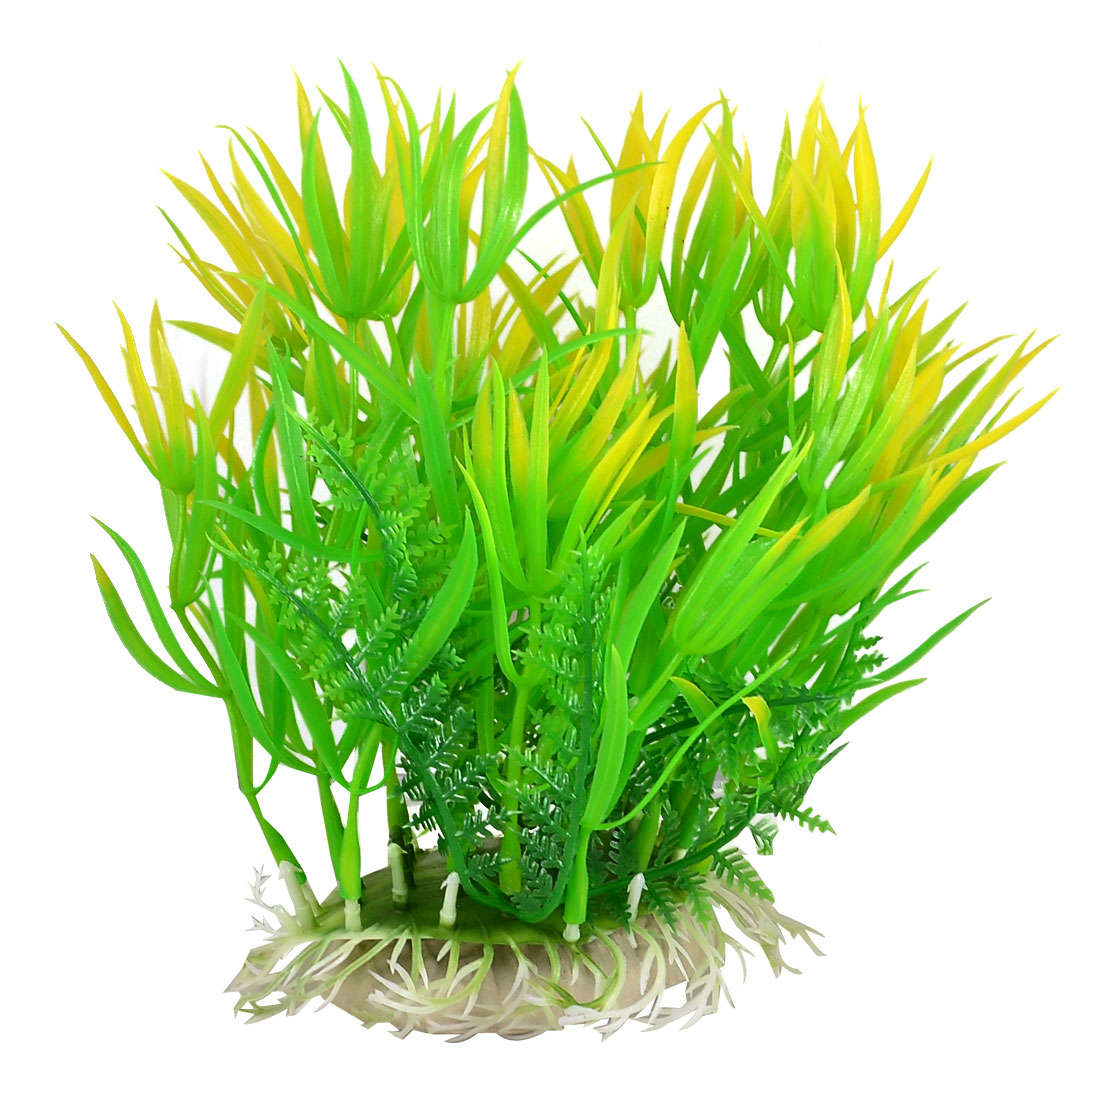 Oval Ceramic Base Aquarium Plastic Plant Ornament Decoration Yellowgreen 18cm